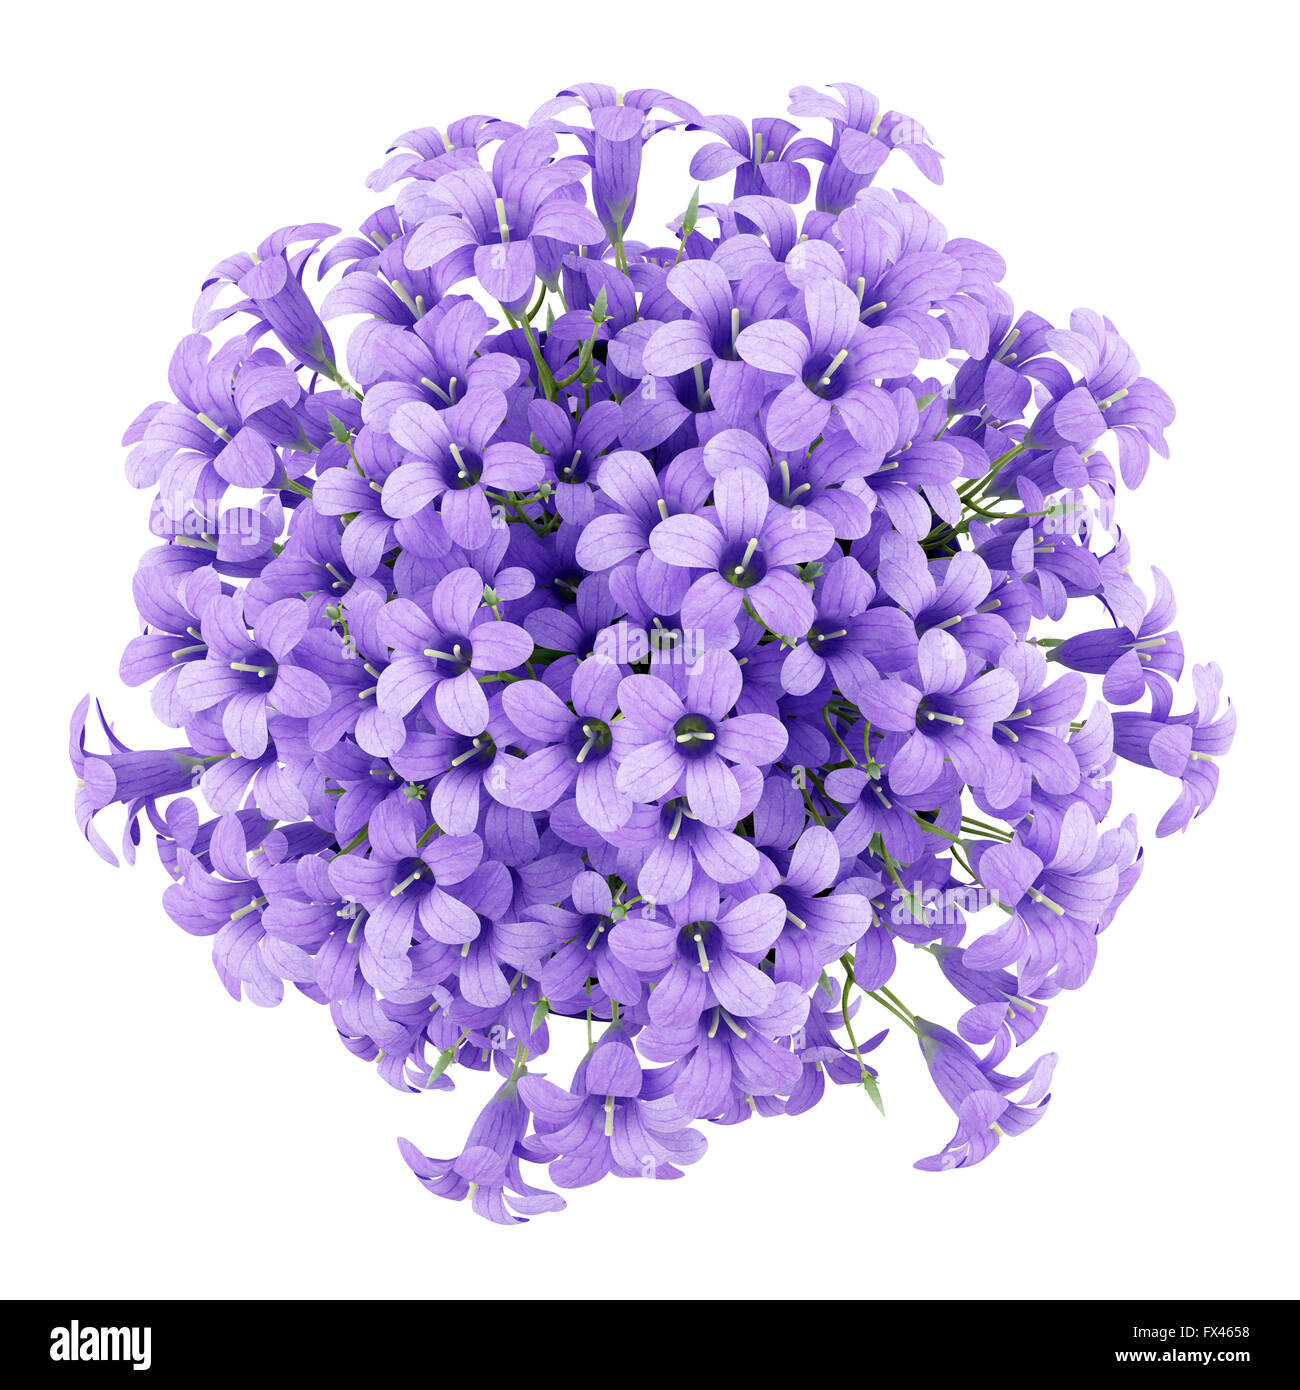 Top view of purple flowers in pot isolated on white background 3d top view of purple flowers in pot isolated on white background 3d illustration mightylinksfo Choice Image